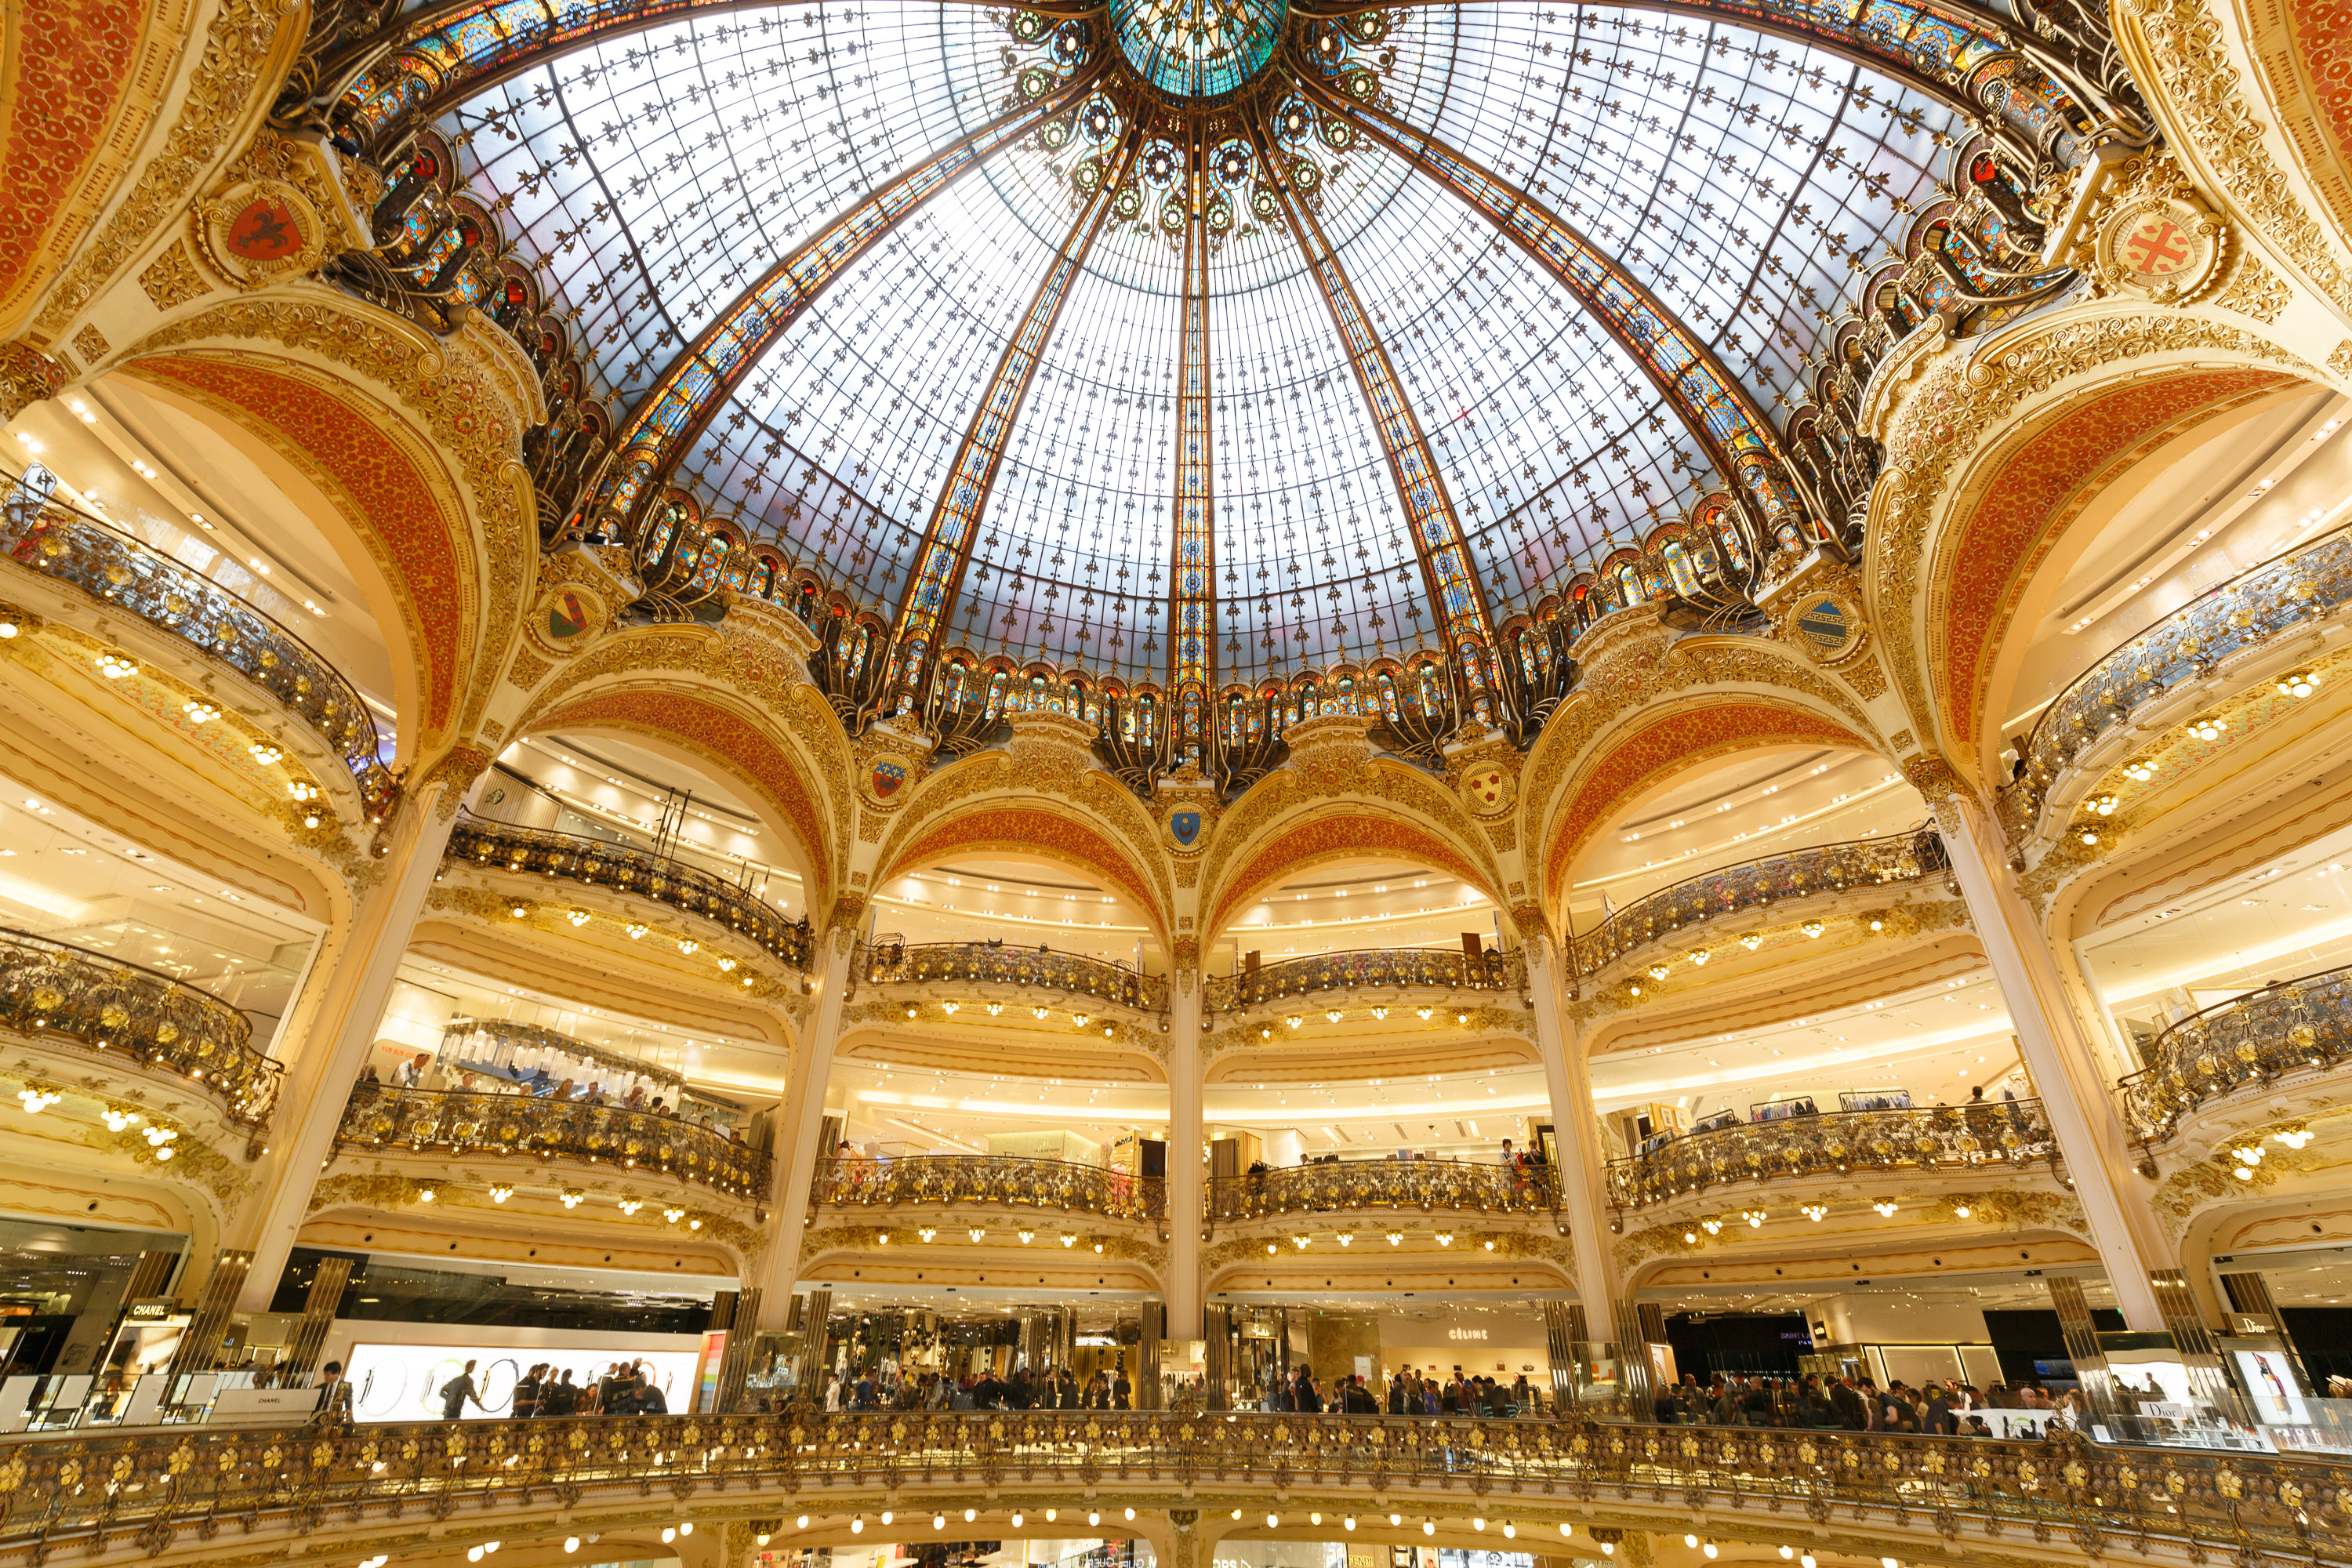 The Apple Watch display at the Galeries Lafayette in Paris occupied prime retail territory: four bays beneath the building's glass atrium.